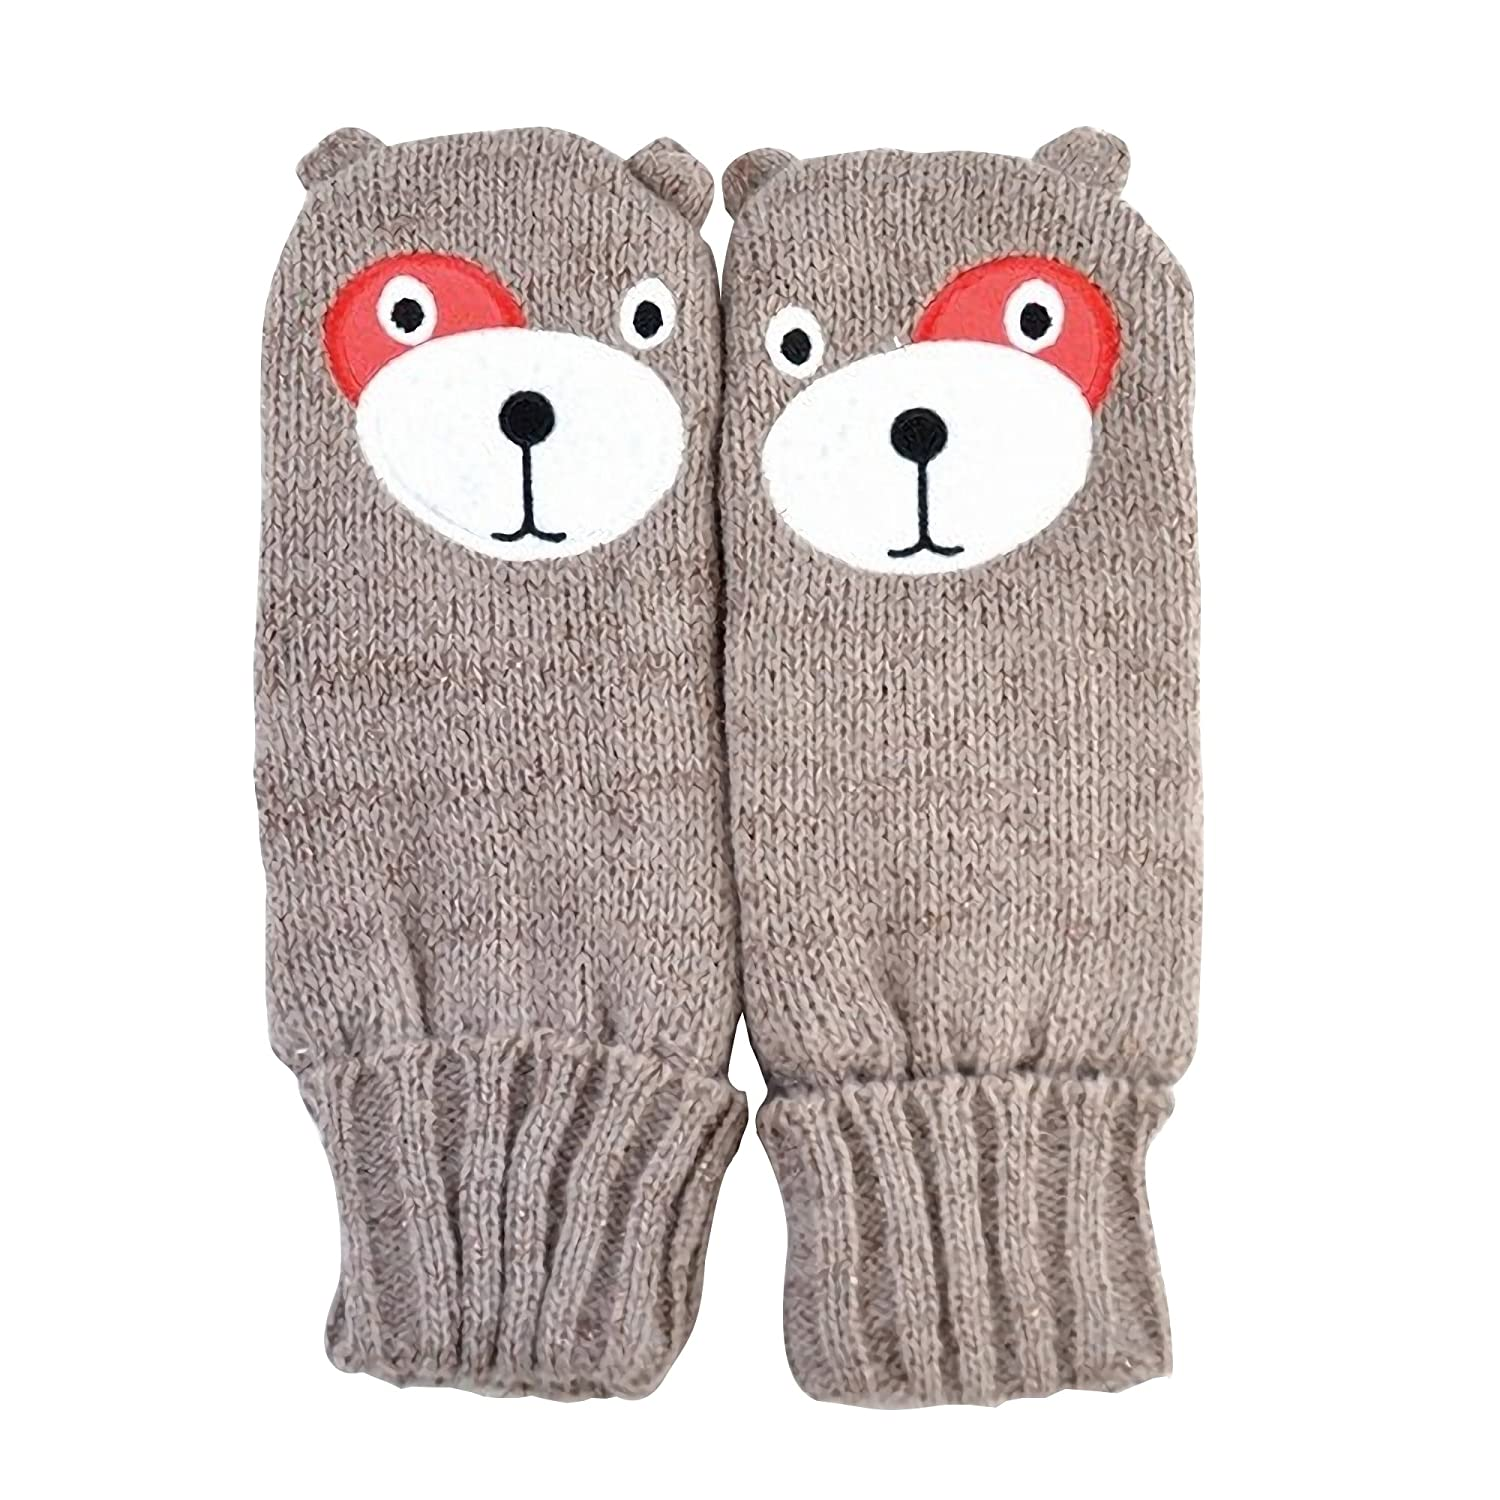 Childrens/Kids Girls Teddy Bear Design Winter Mittens (7-10 Years) (Brown) Universal Textiles UTGL223_14